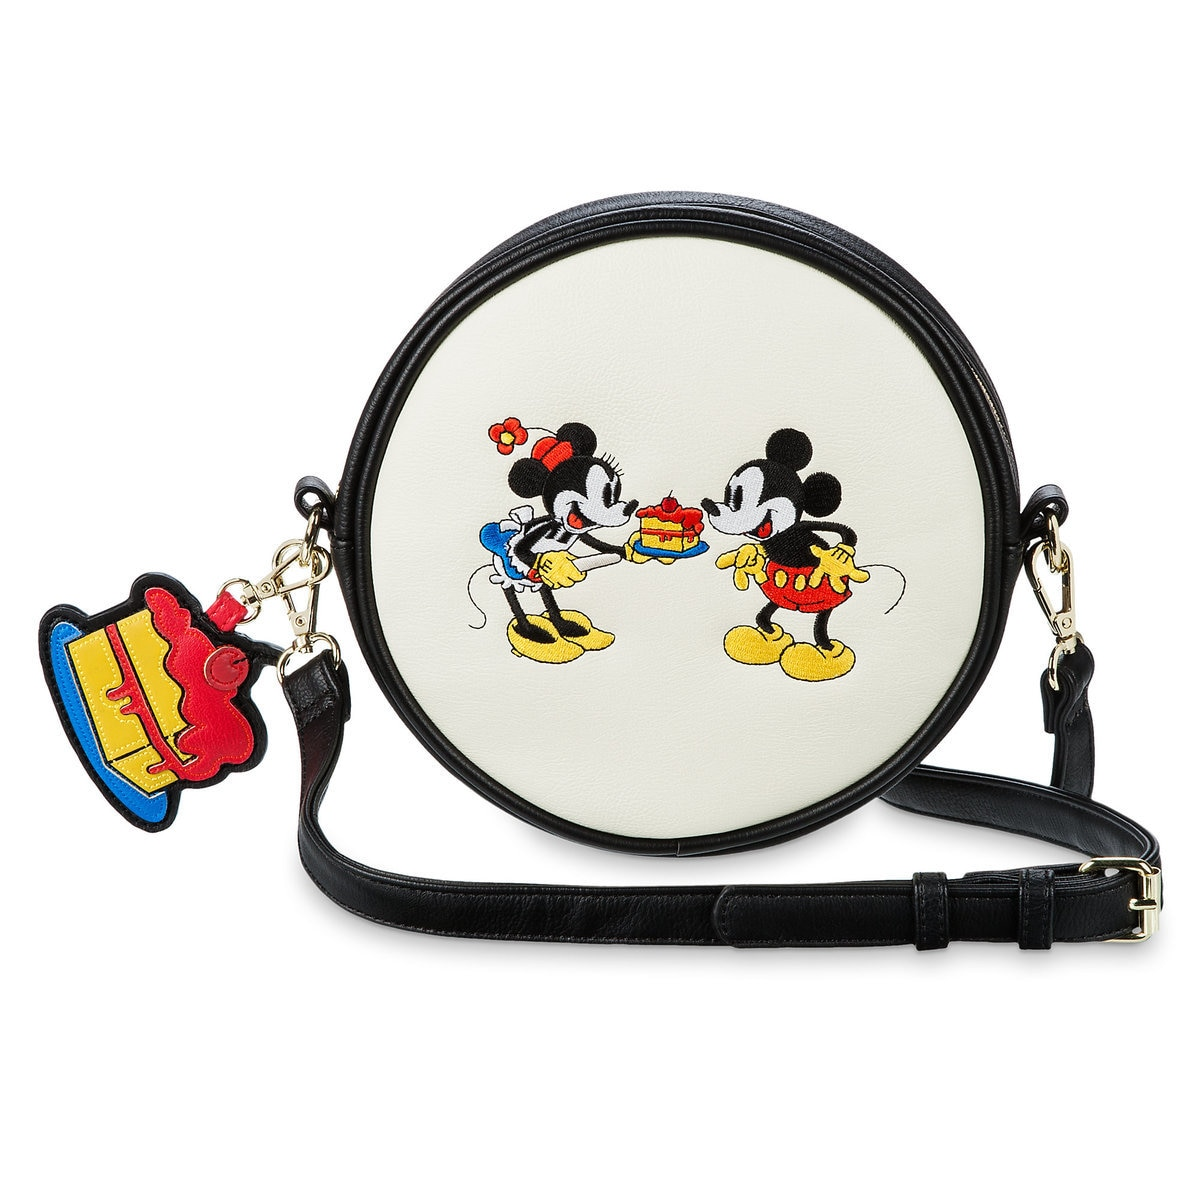 f4270a5f093 Product Image of Mickey and Minnie Mouse Crossbody Bag by Loungefly   1